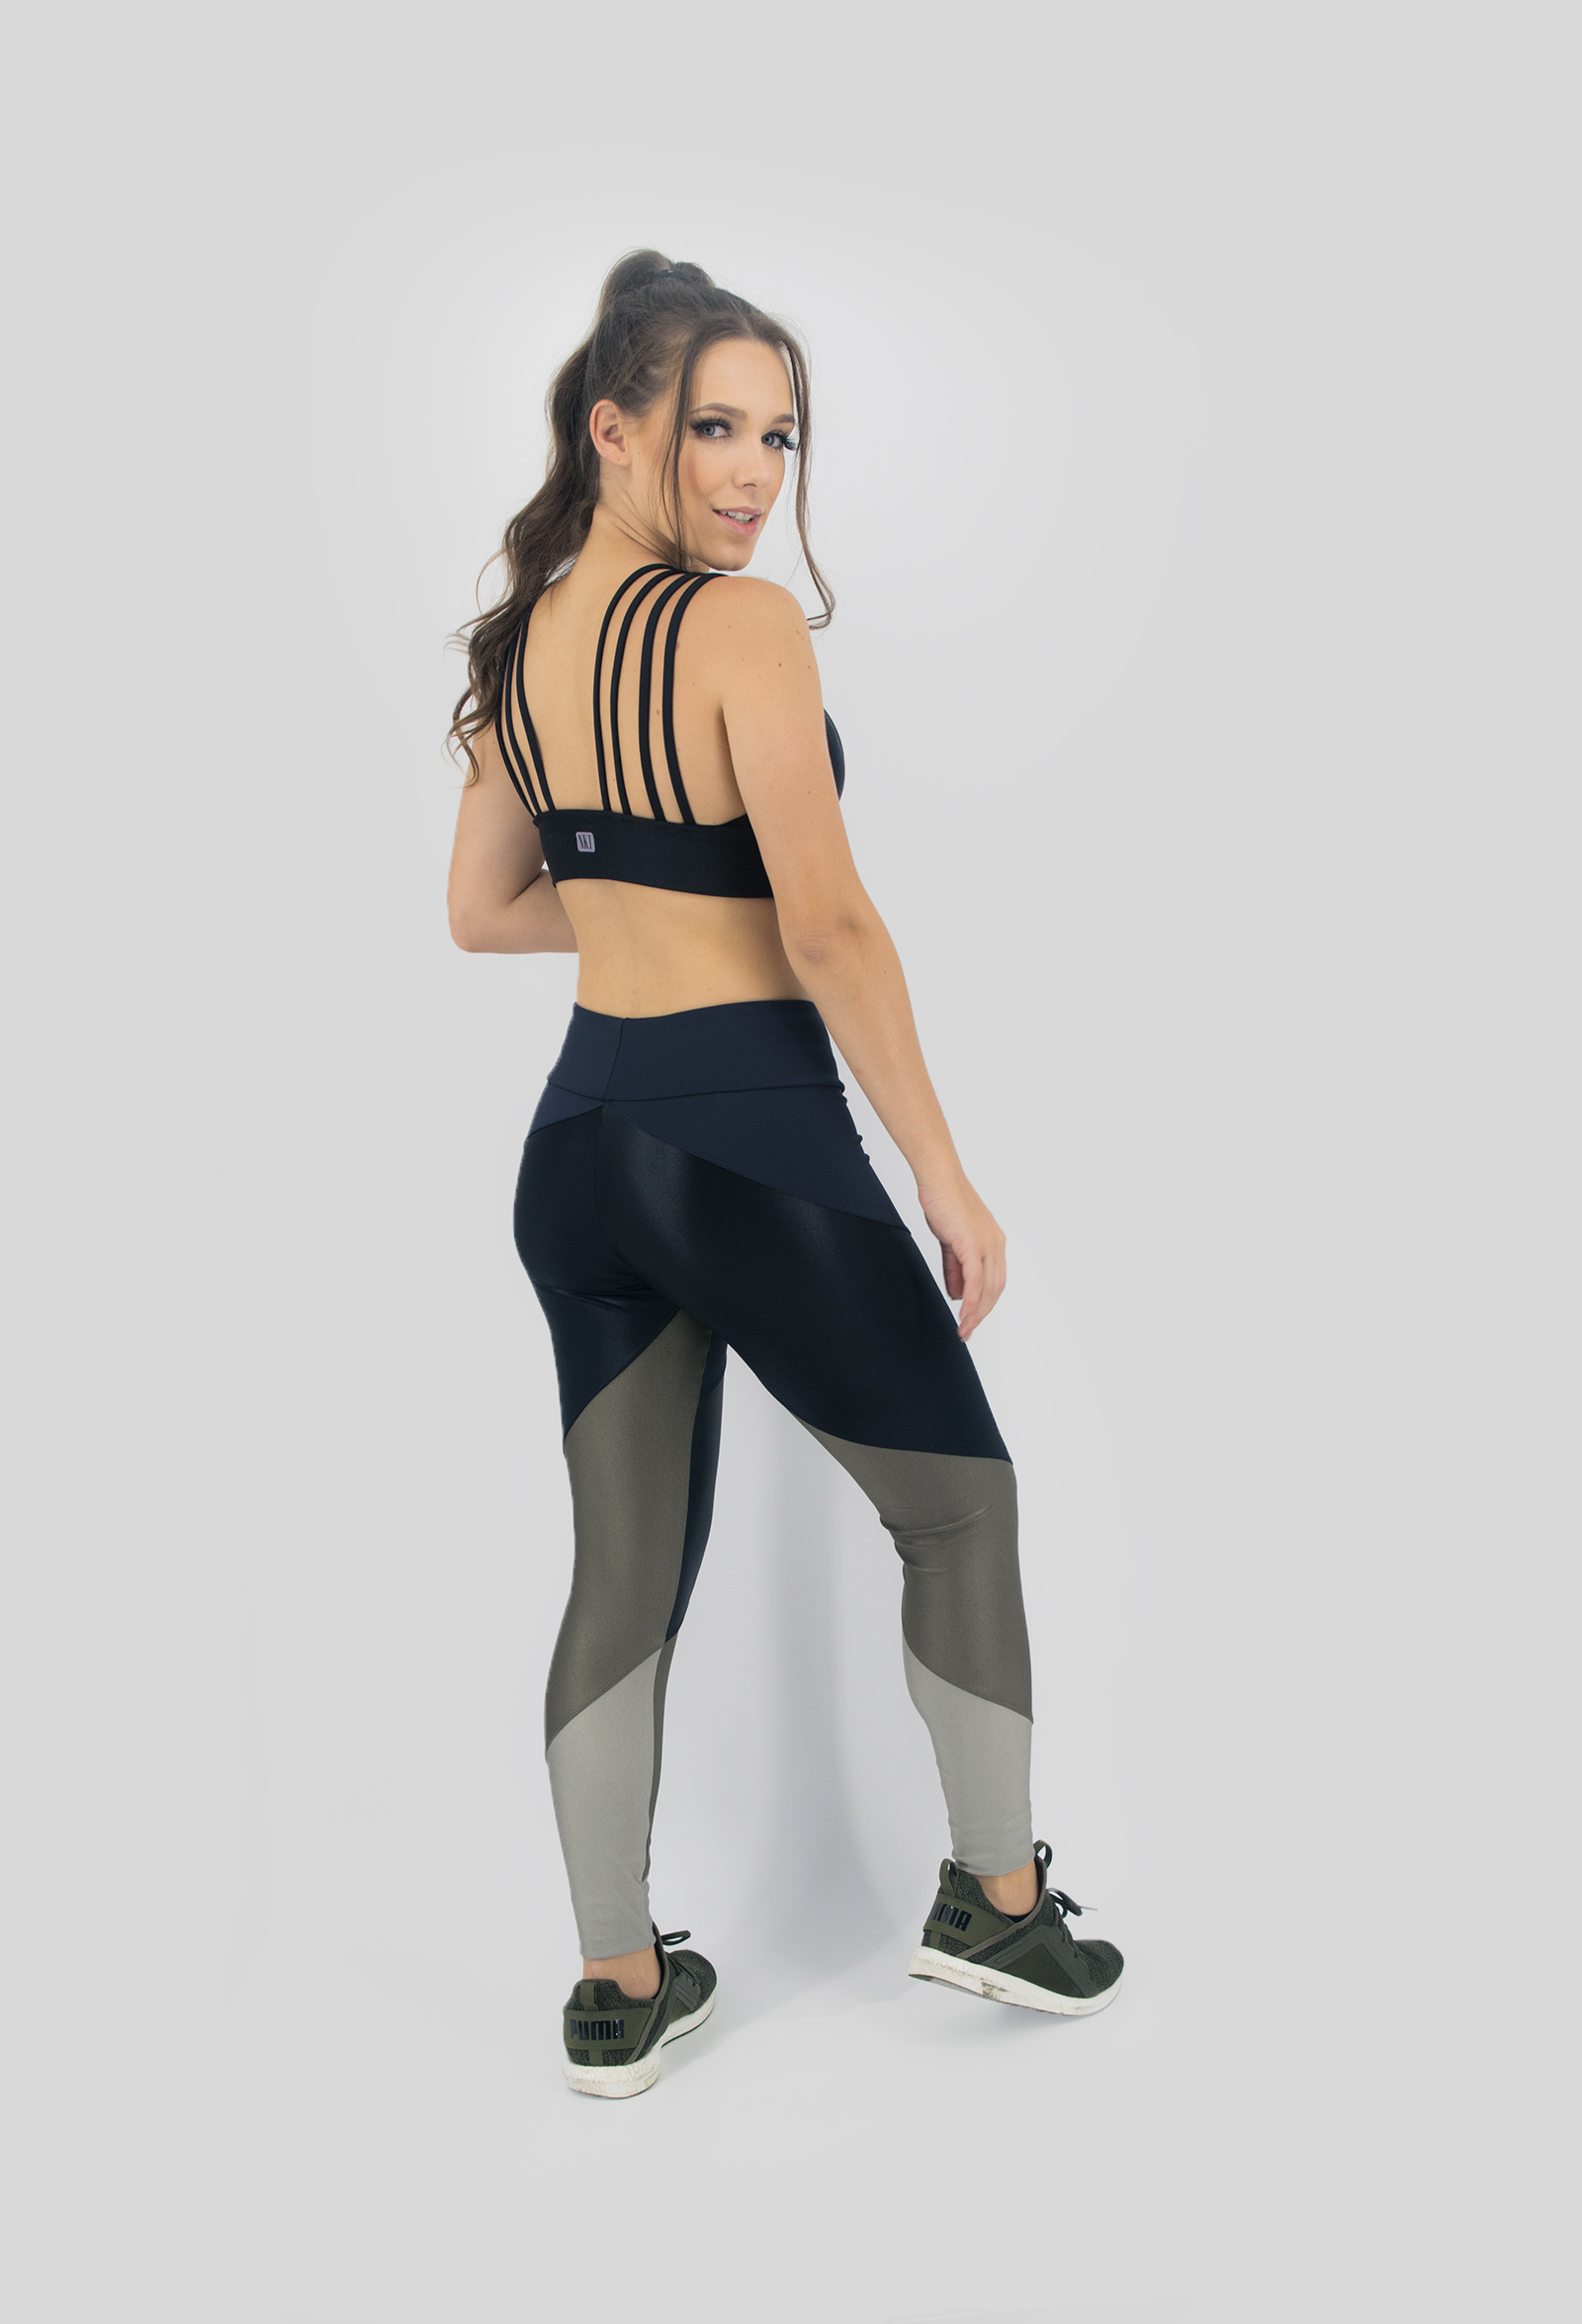 Legging Profusion Verde Musgo, Coleção Move Your Body - NKT Fitwear Moda Fitness